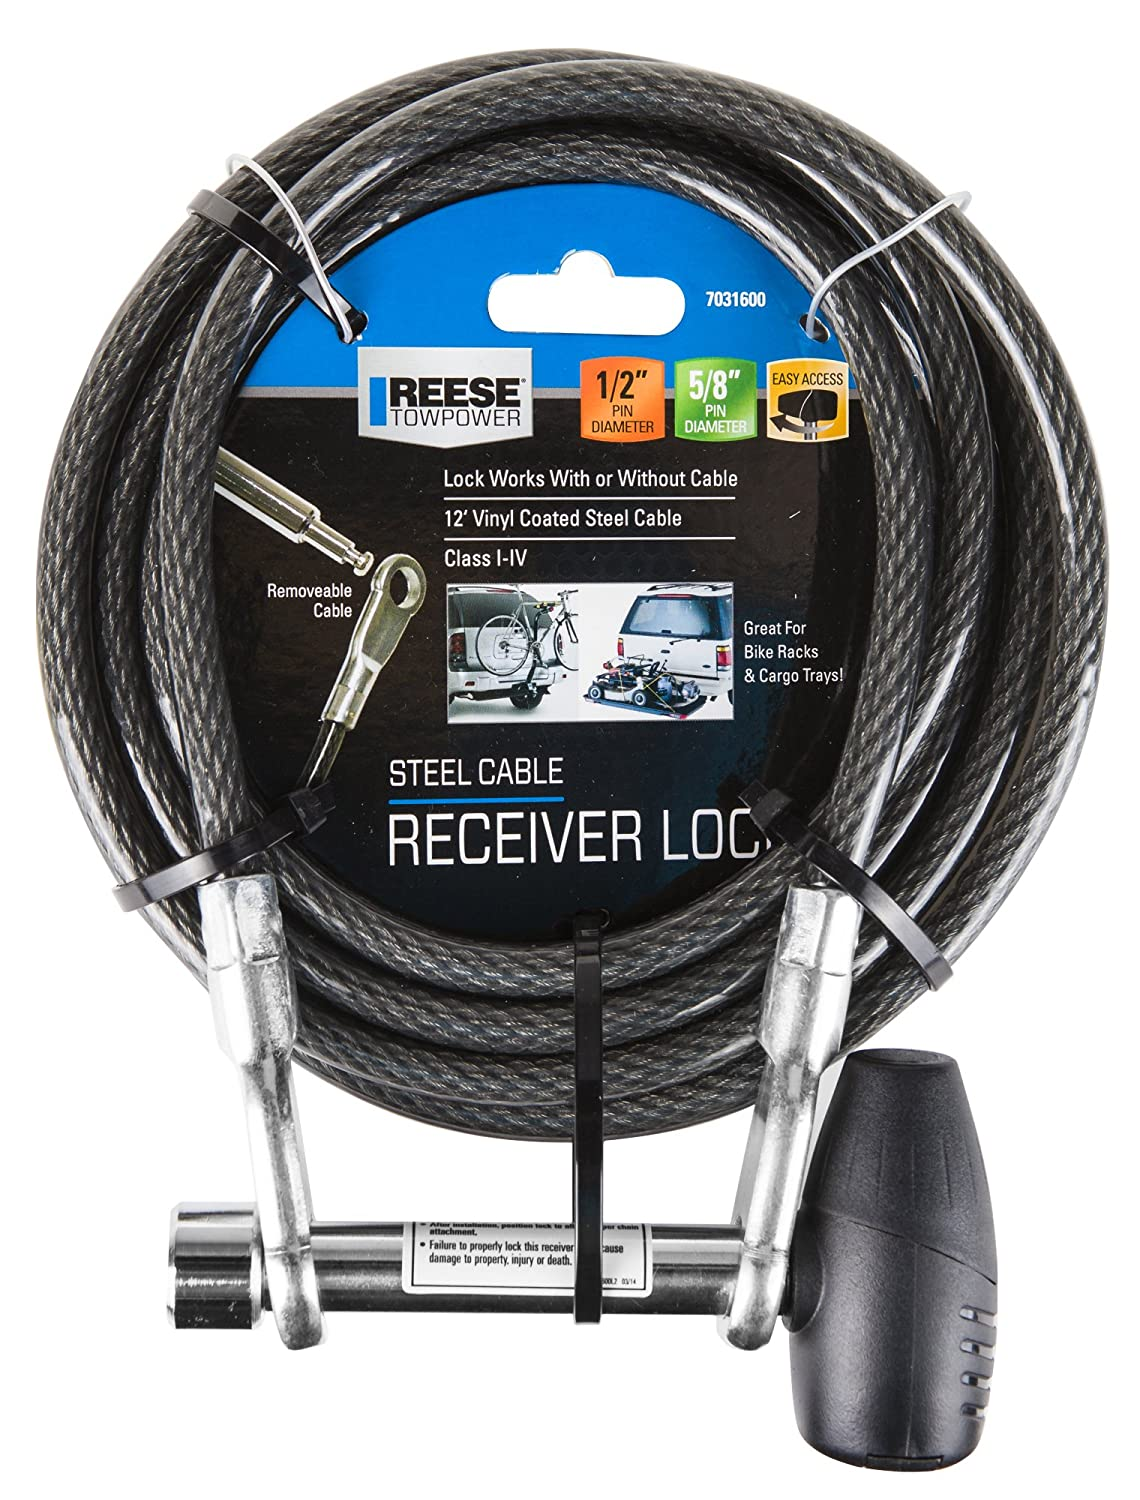 Amazon.com: Reese Towpower 7031600 Steel Cable and Receiver Lock ...